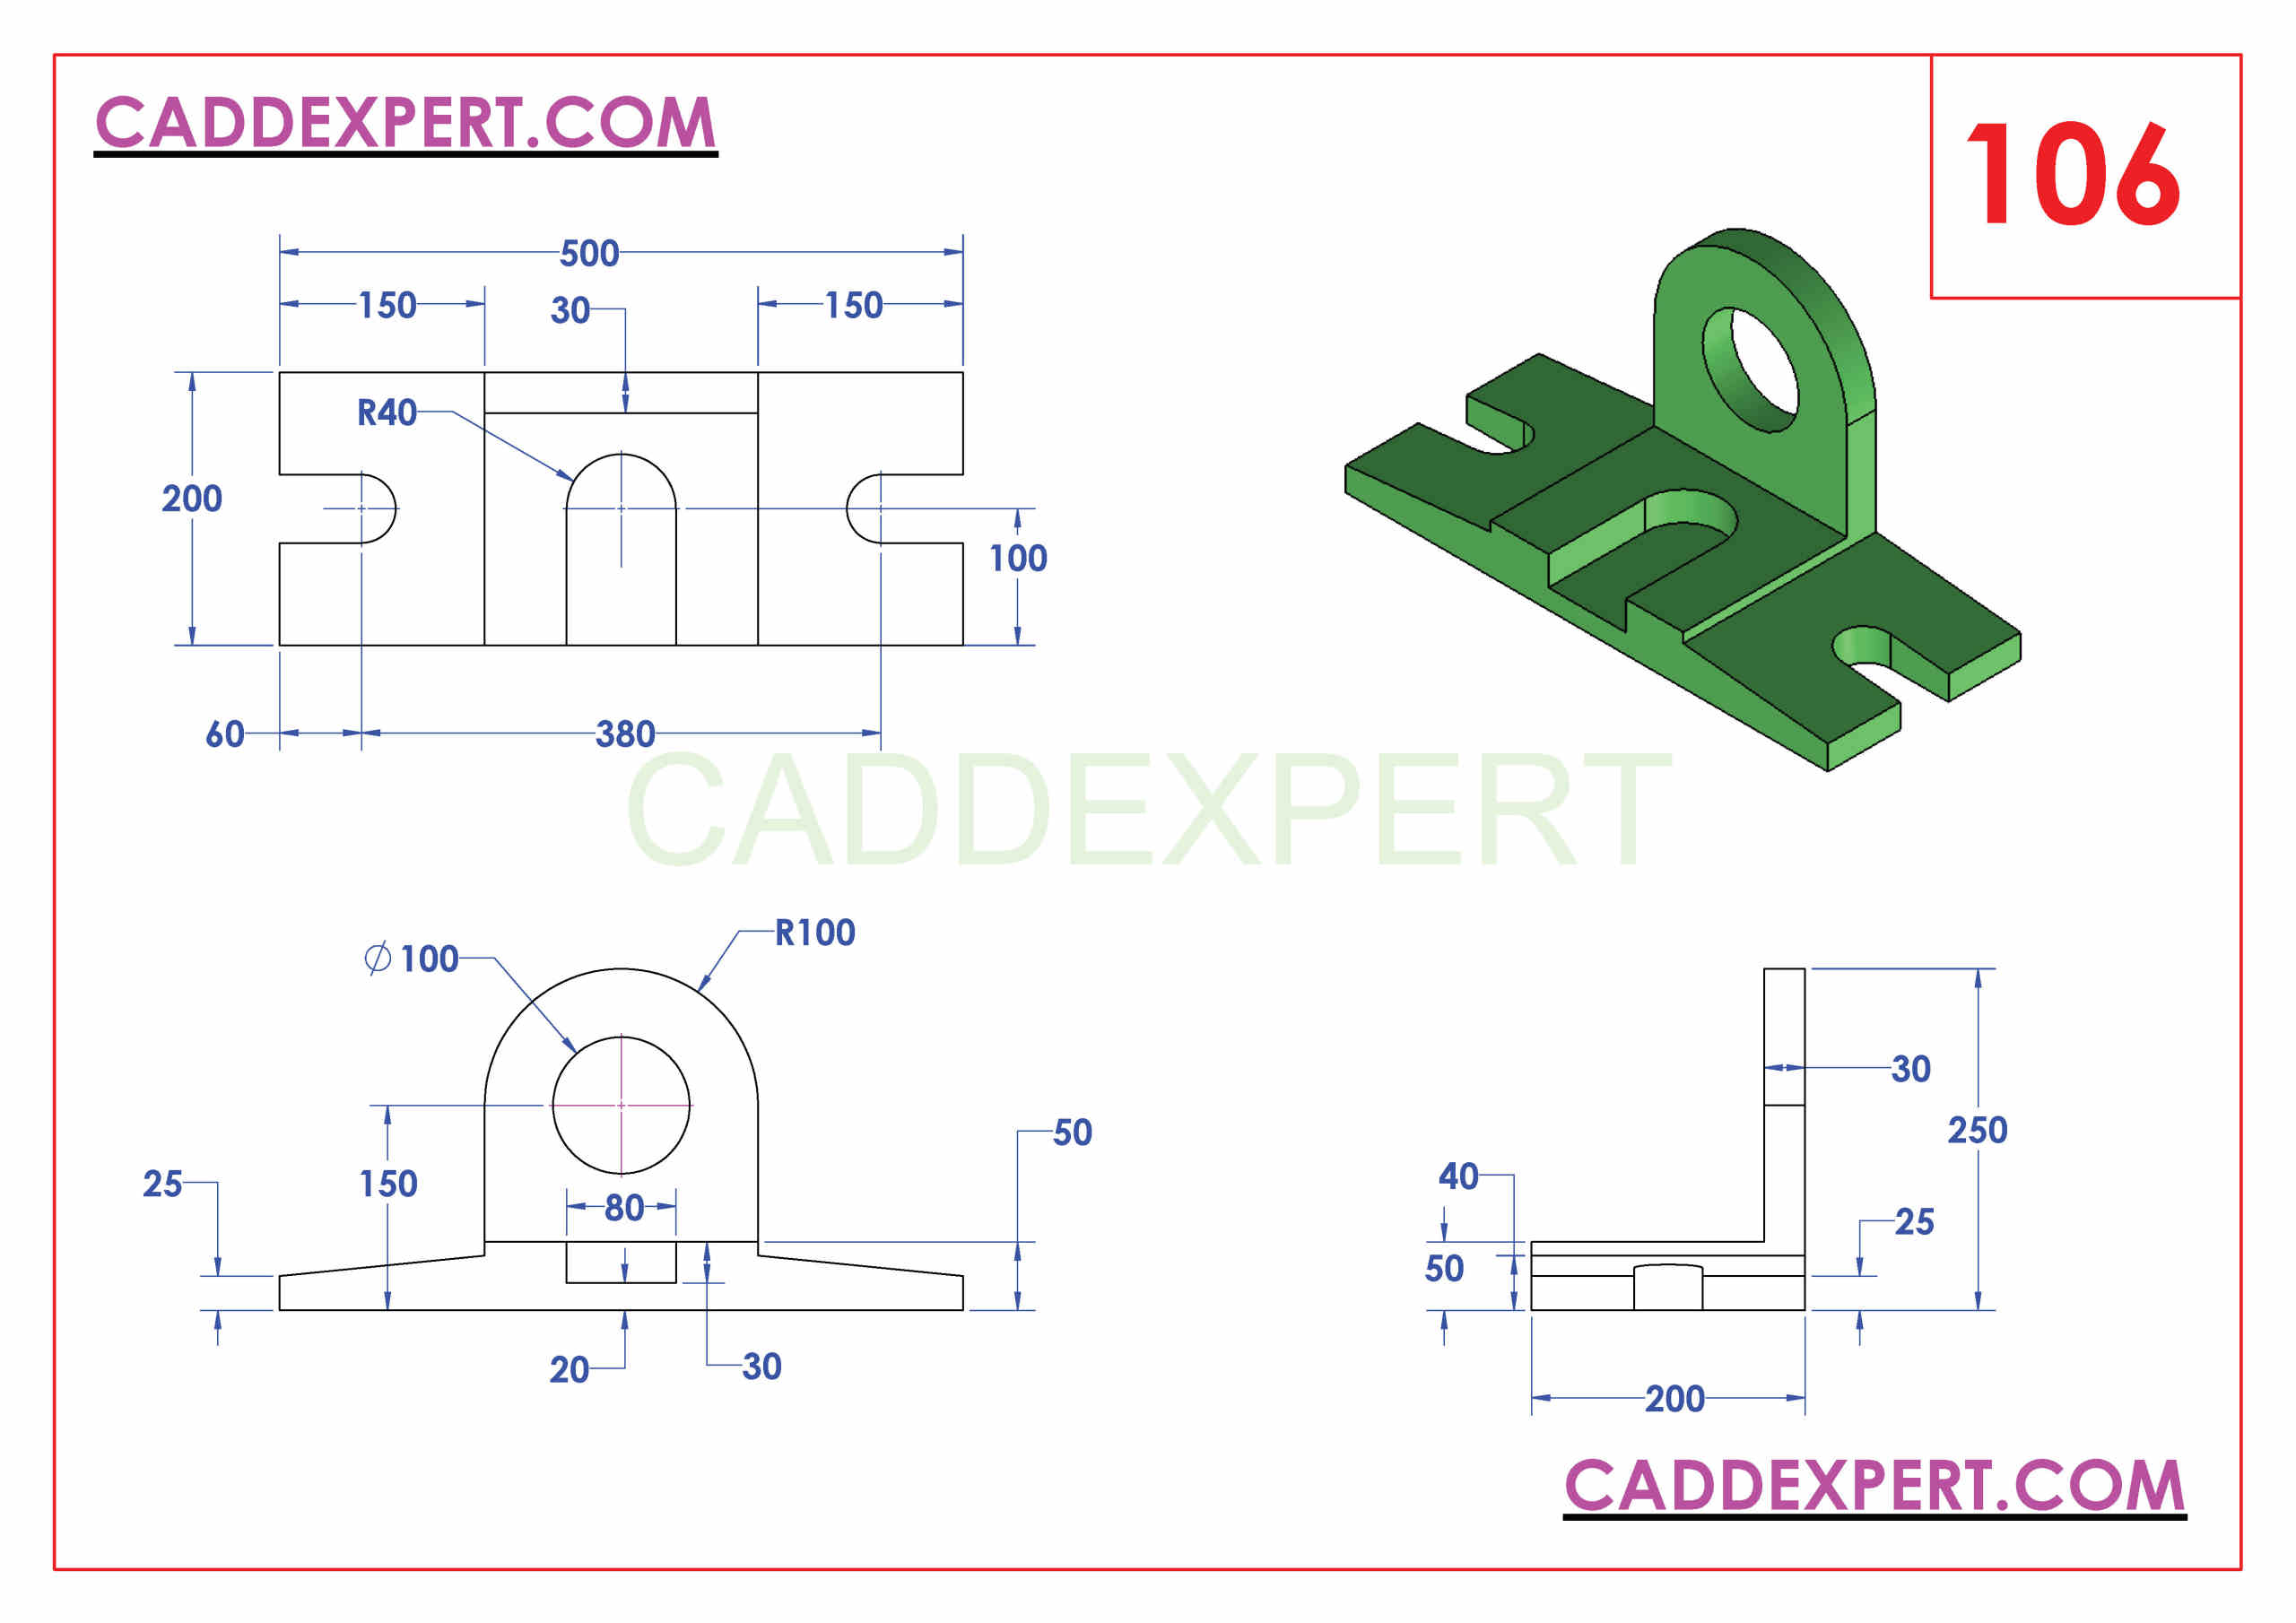 50 SOLIDWORKS EXERCISES PDF - 106